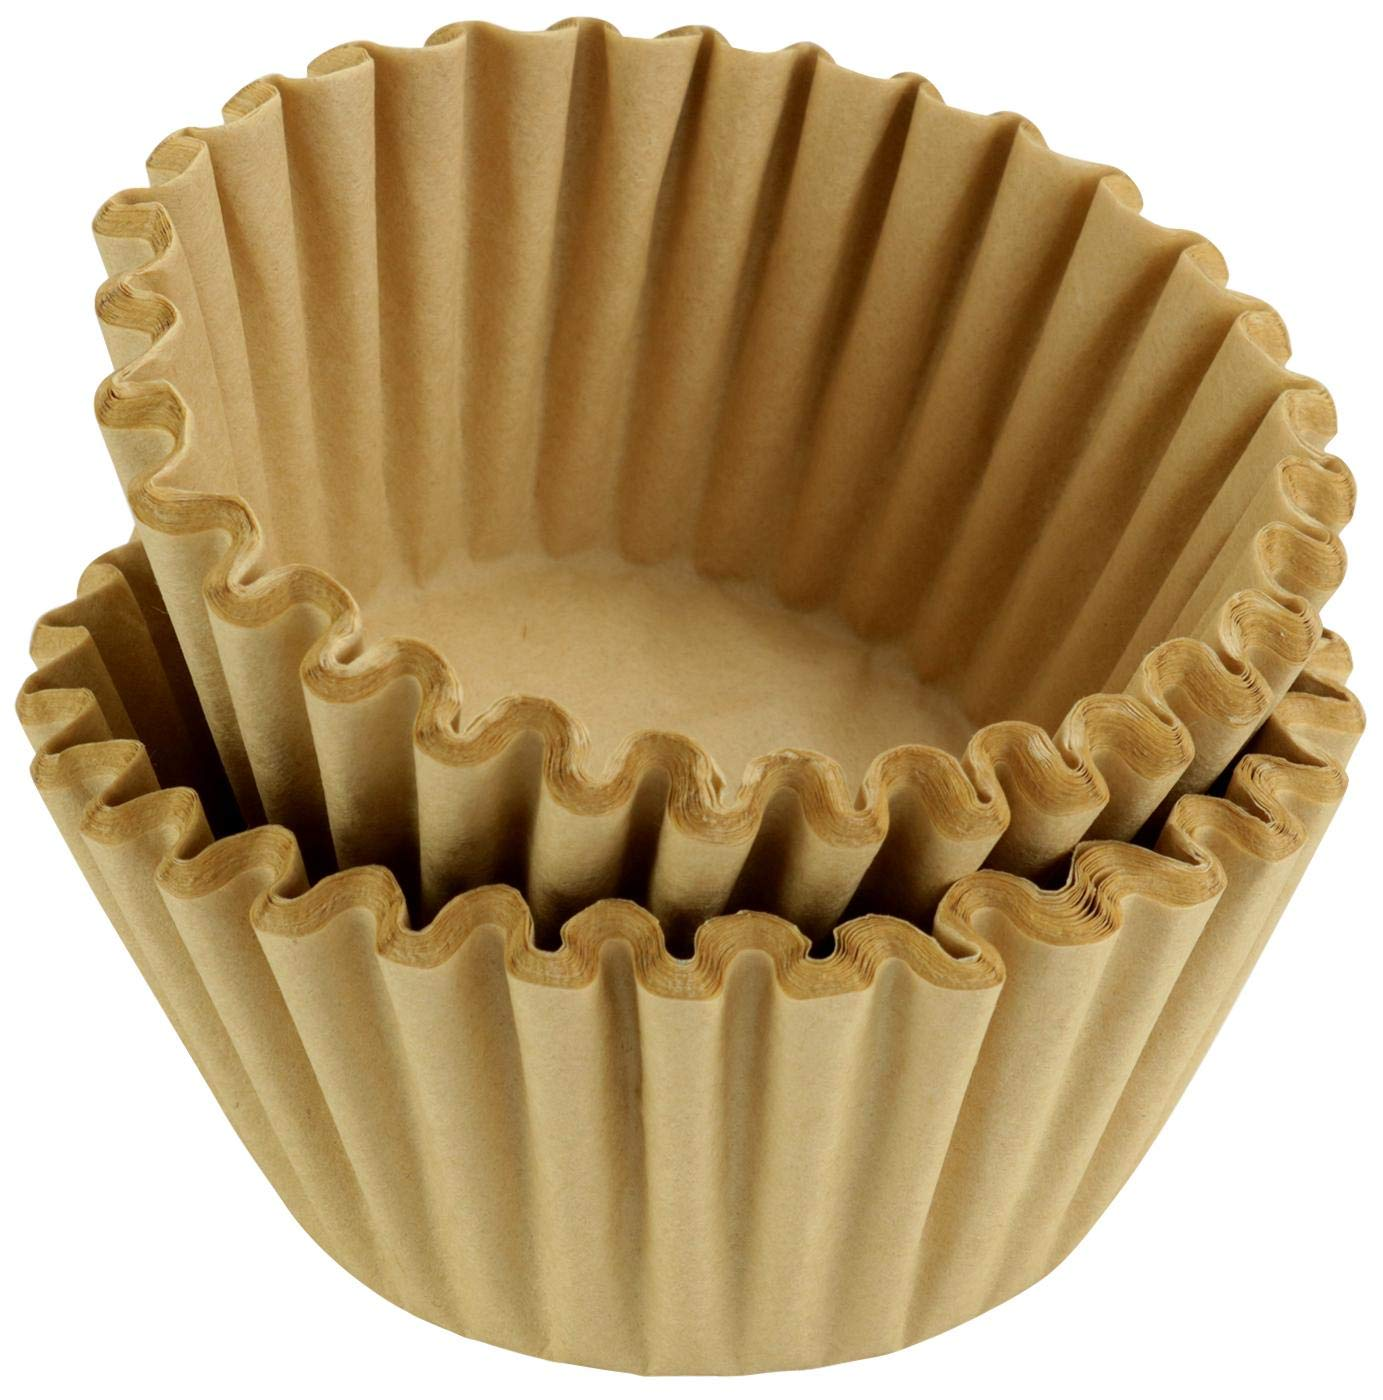 B07MLYHRQ9 8-12 Cup Basket Coffee Filters (Natural Unbleached, 500) 71QLEtICKsL